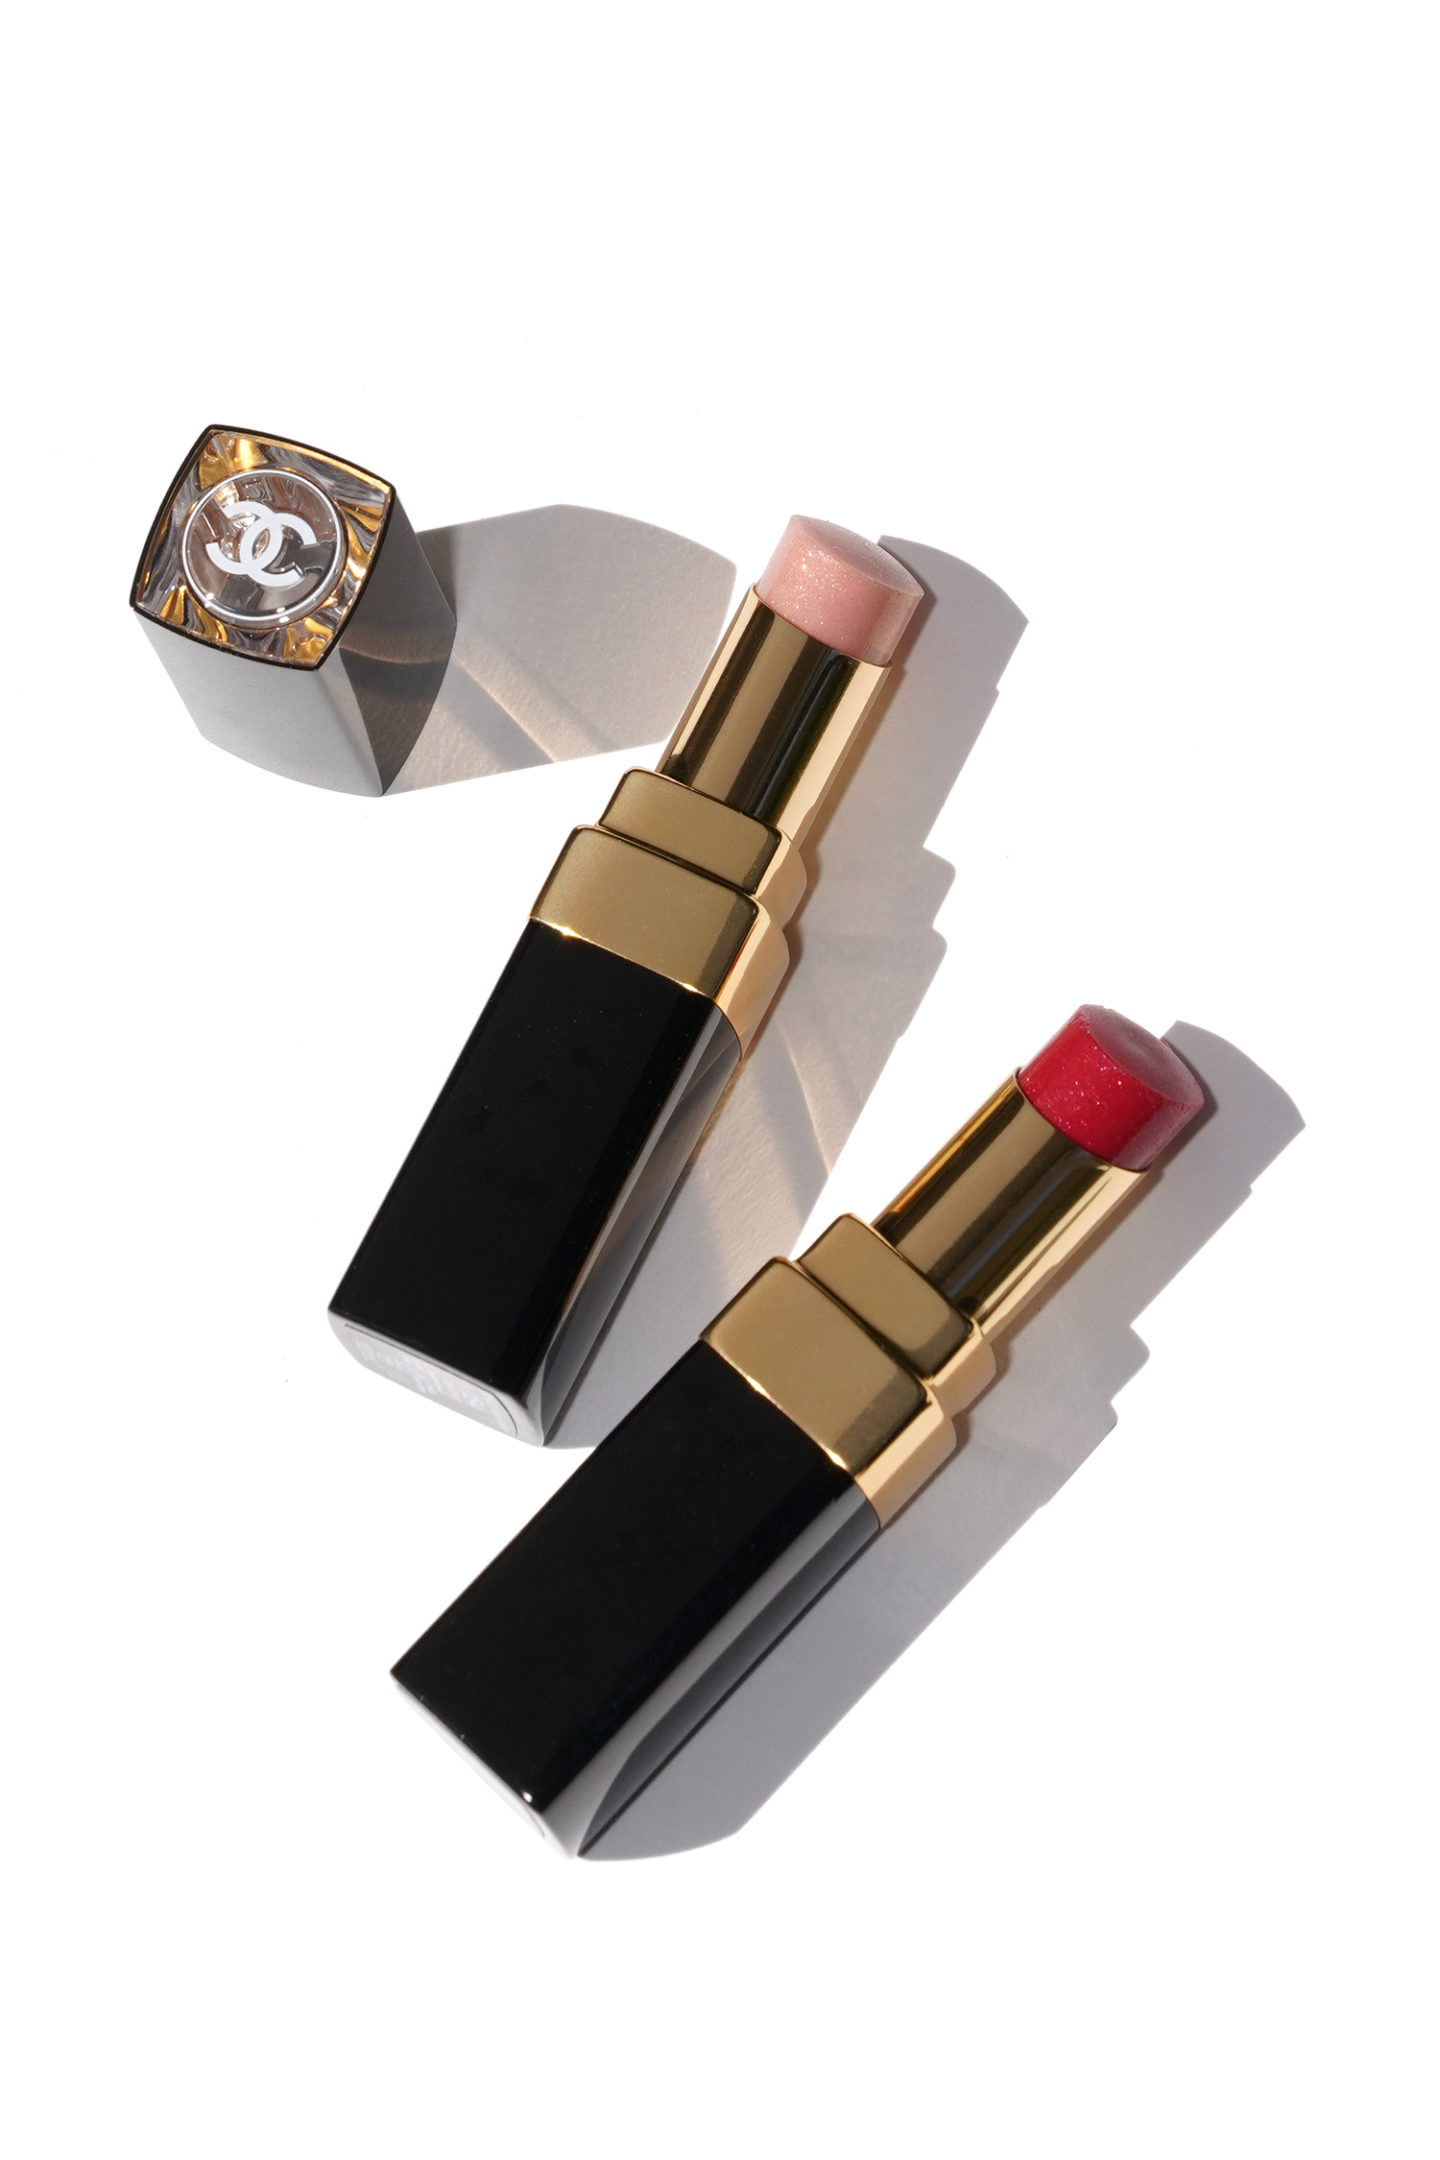 Chanel Rouge Coco Flash dans Douceur 154 et Delicatesse 156